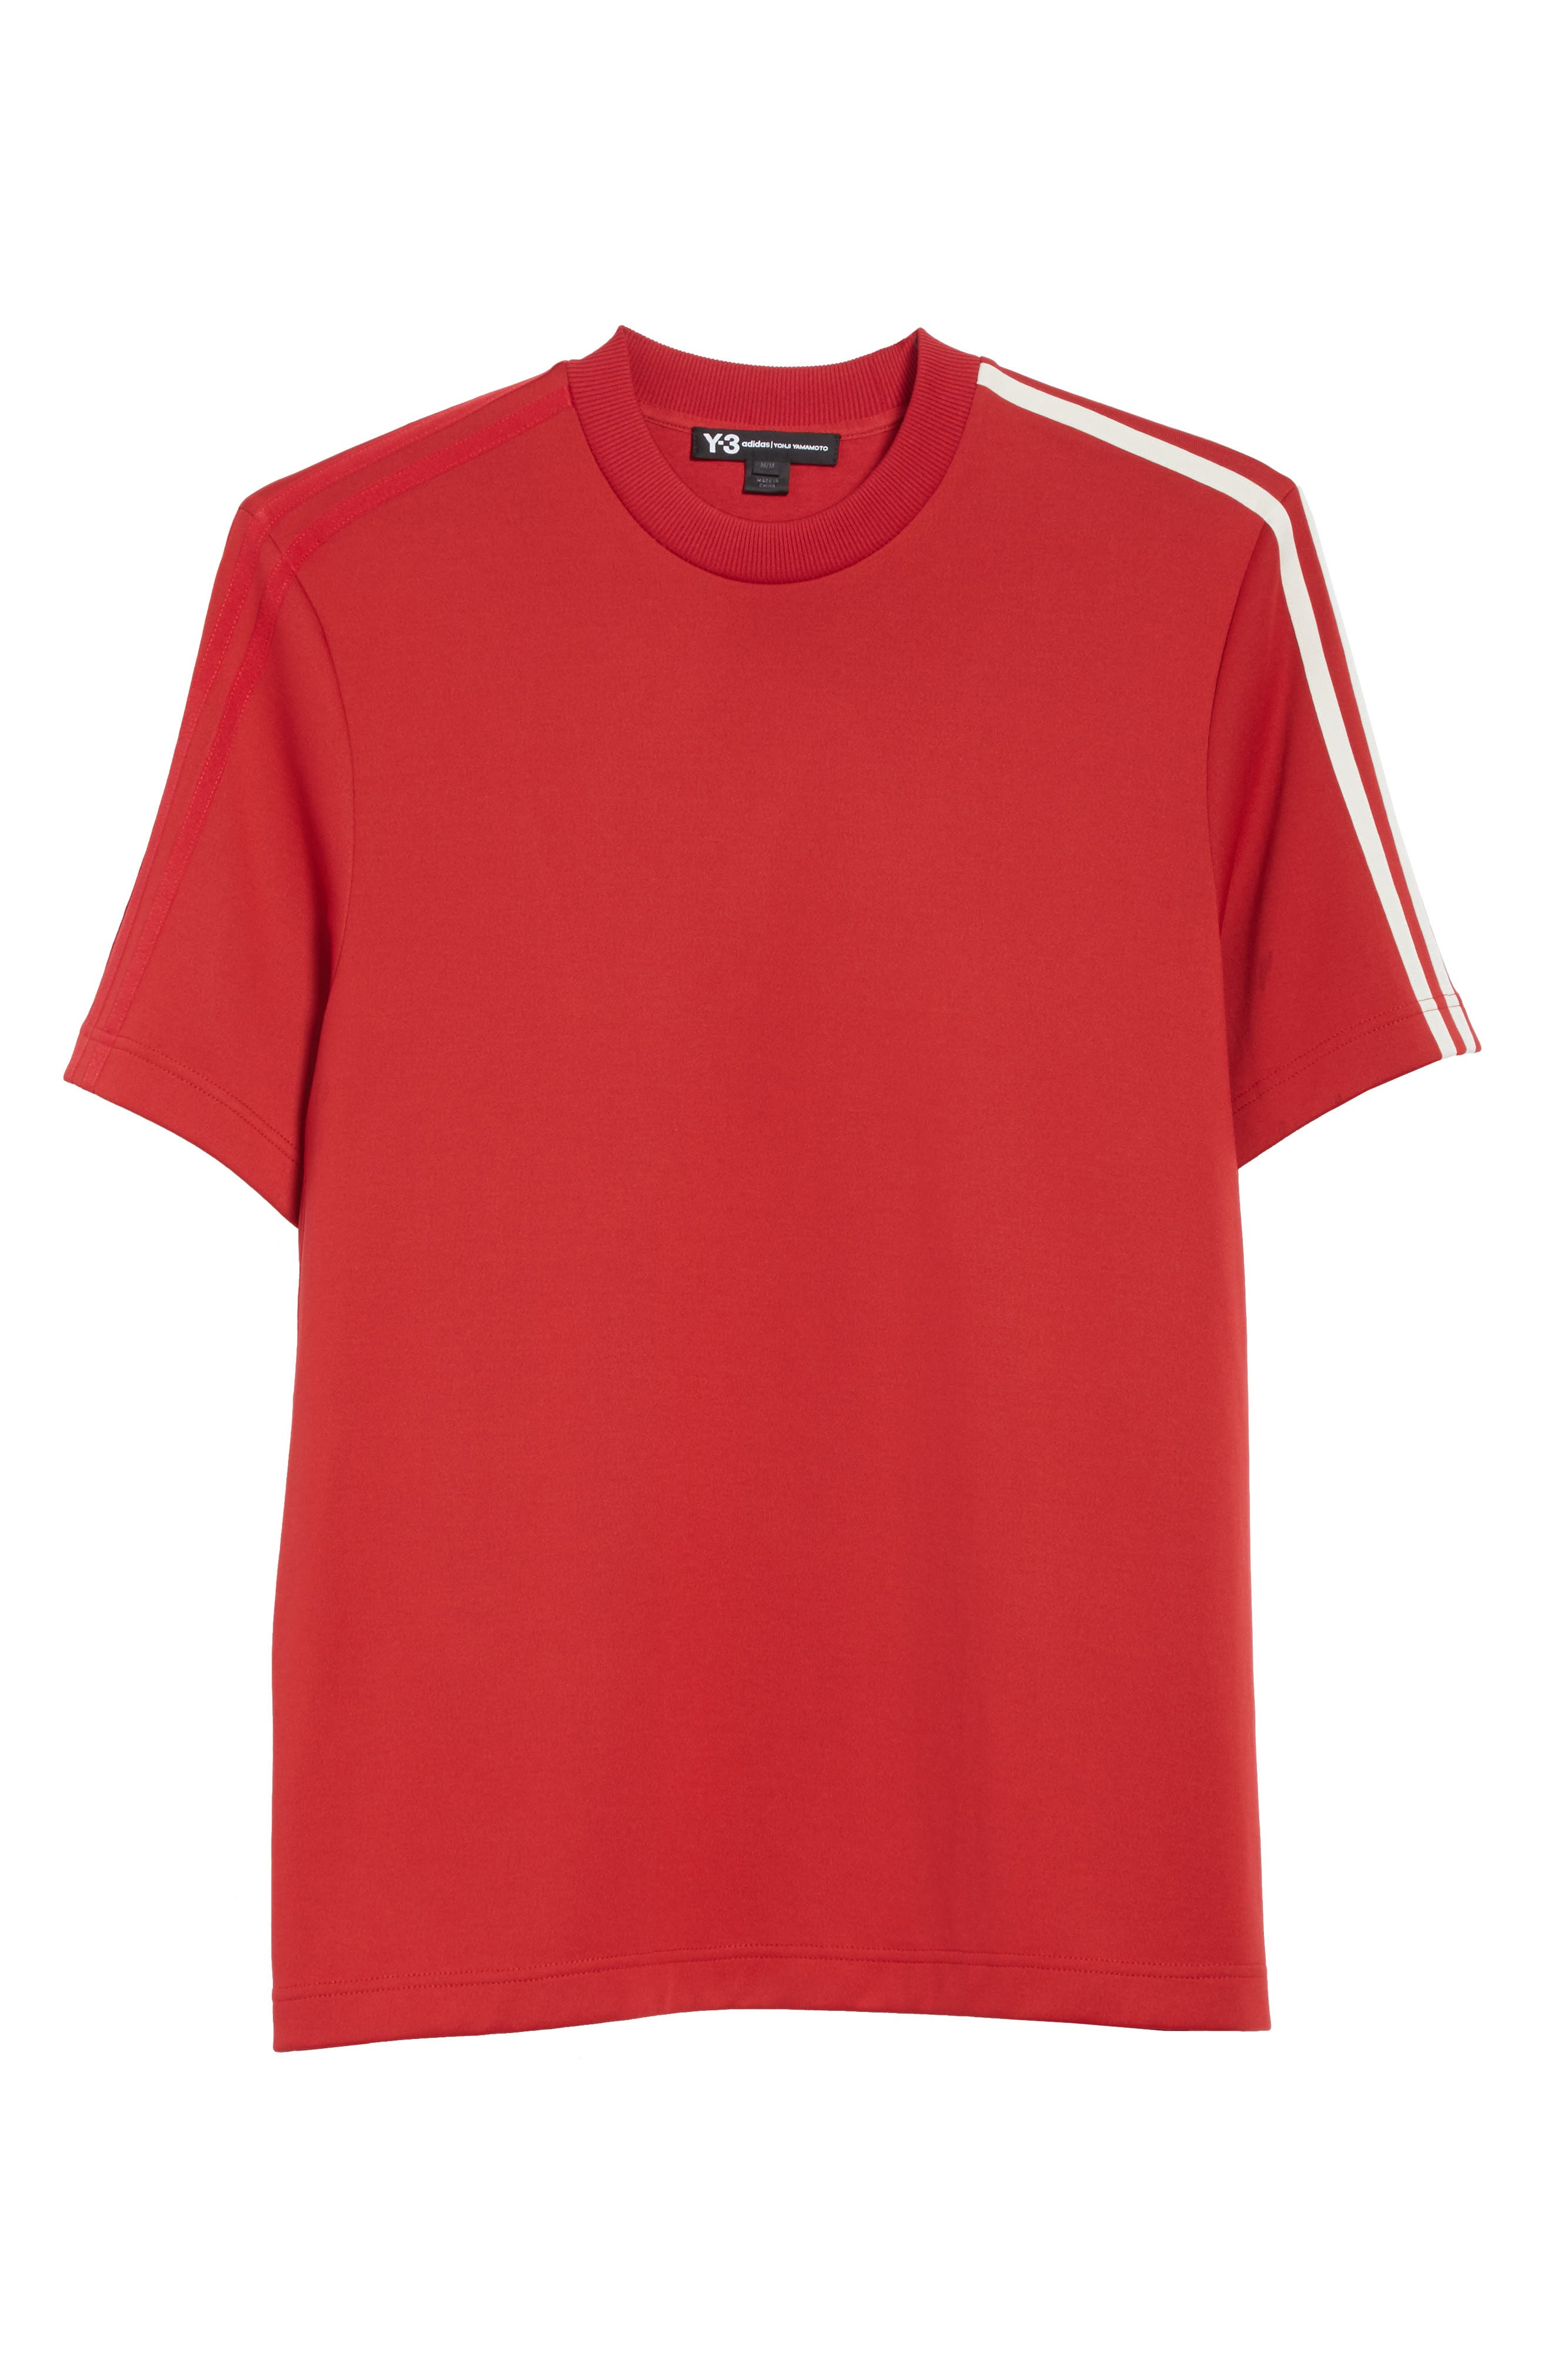 x adidas Stripe Crewneck T-Shirt,                             Alternate thumbnail 6, color,                             Red